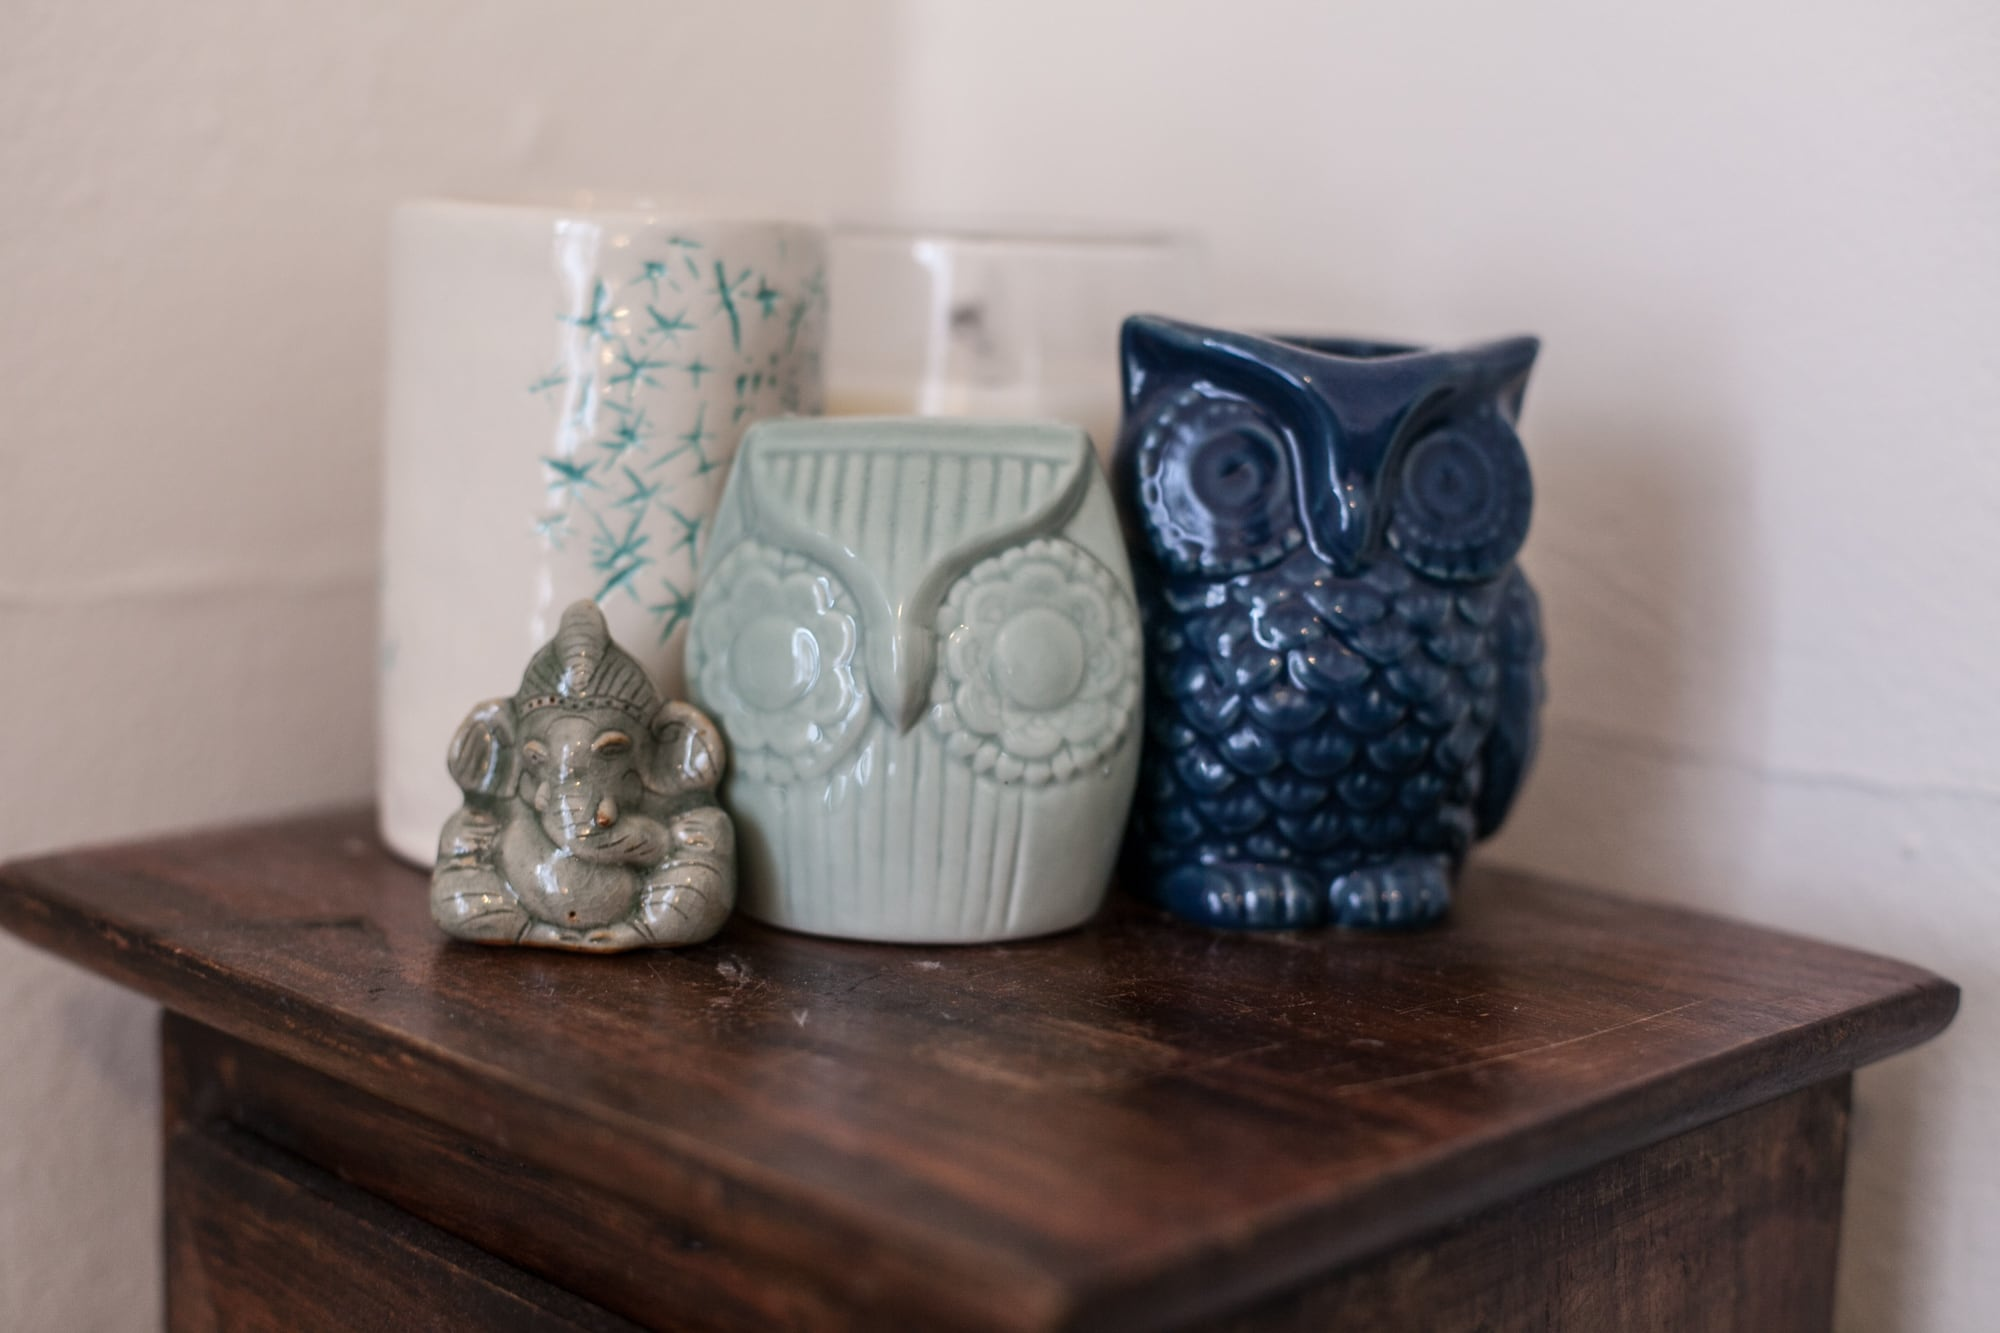 Owls by my bed.